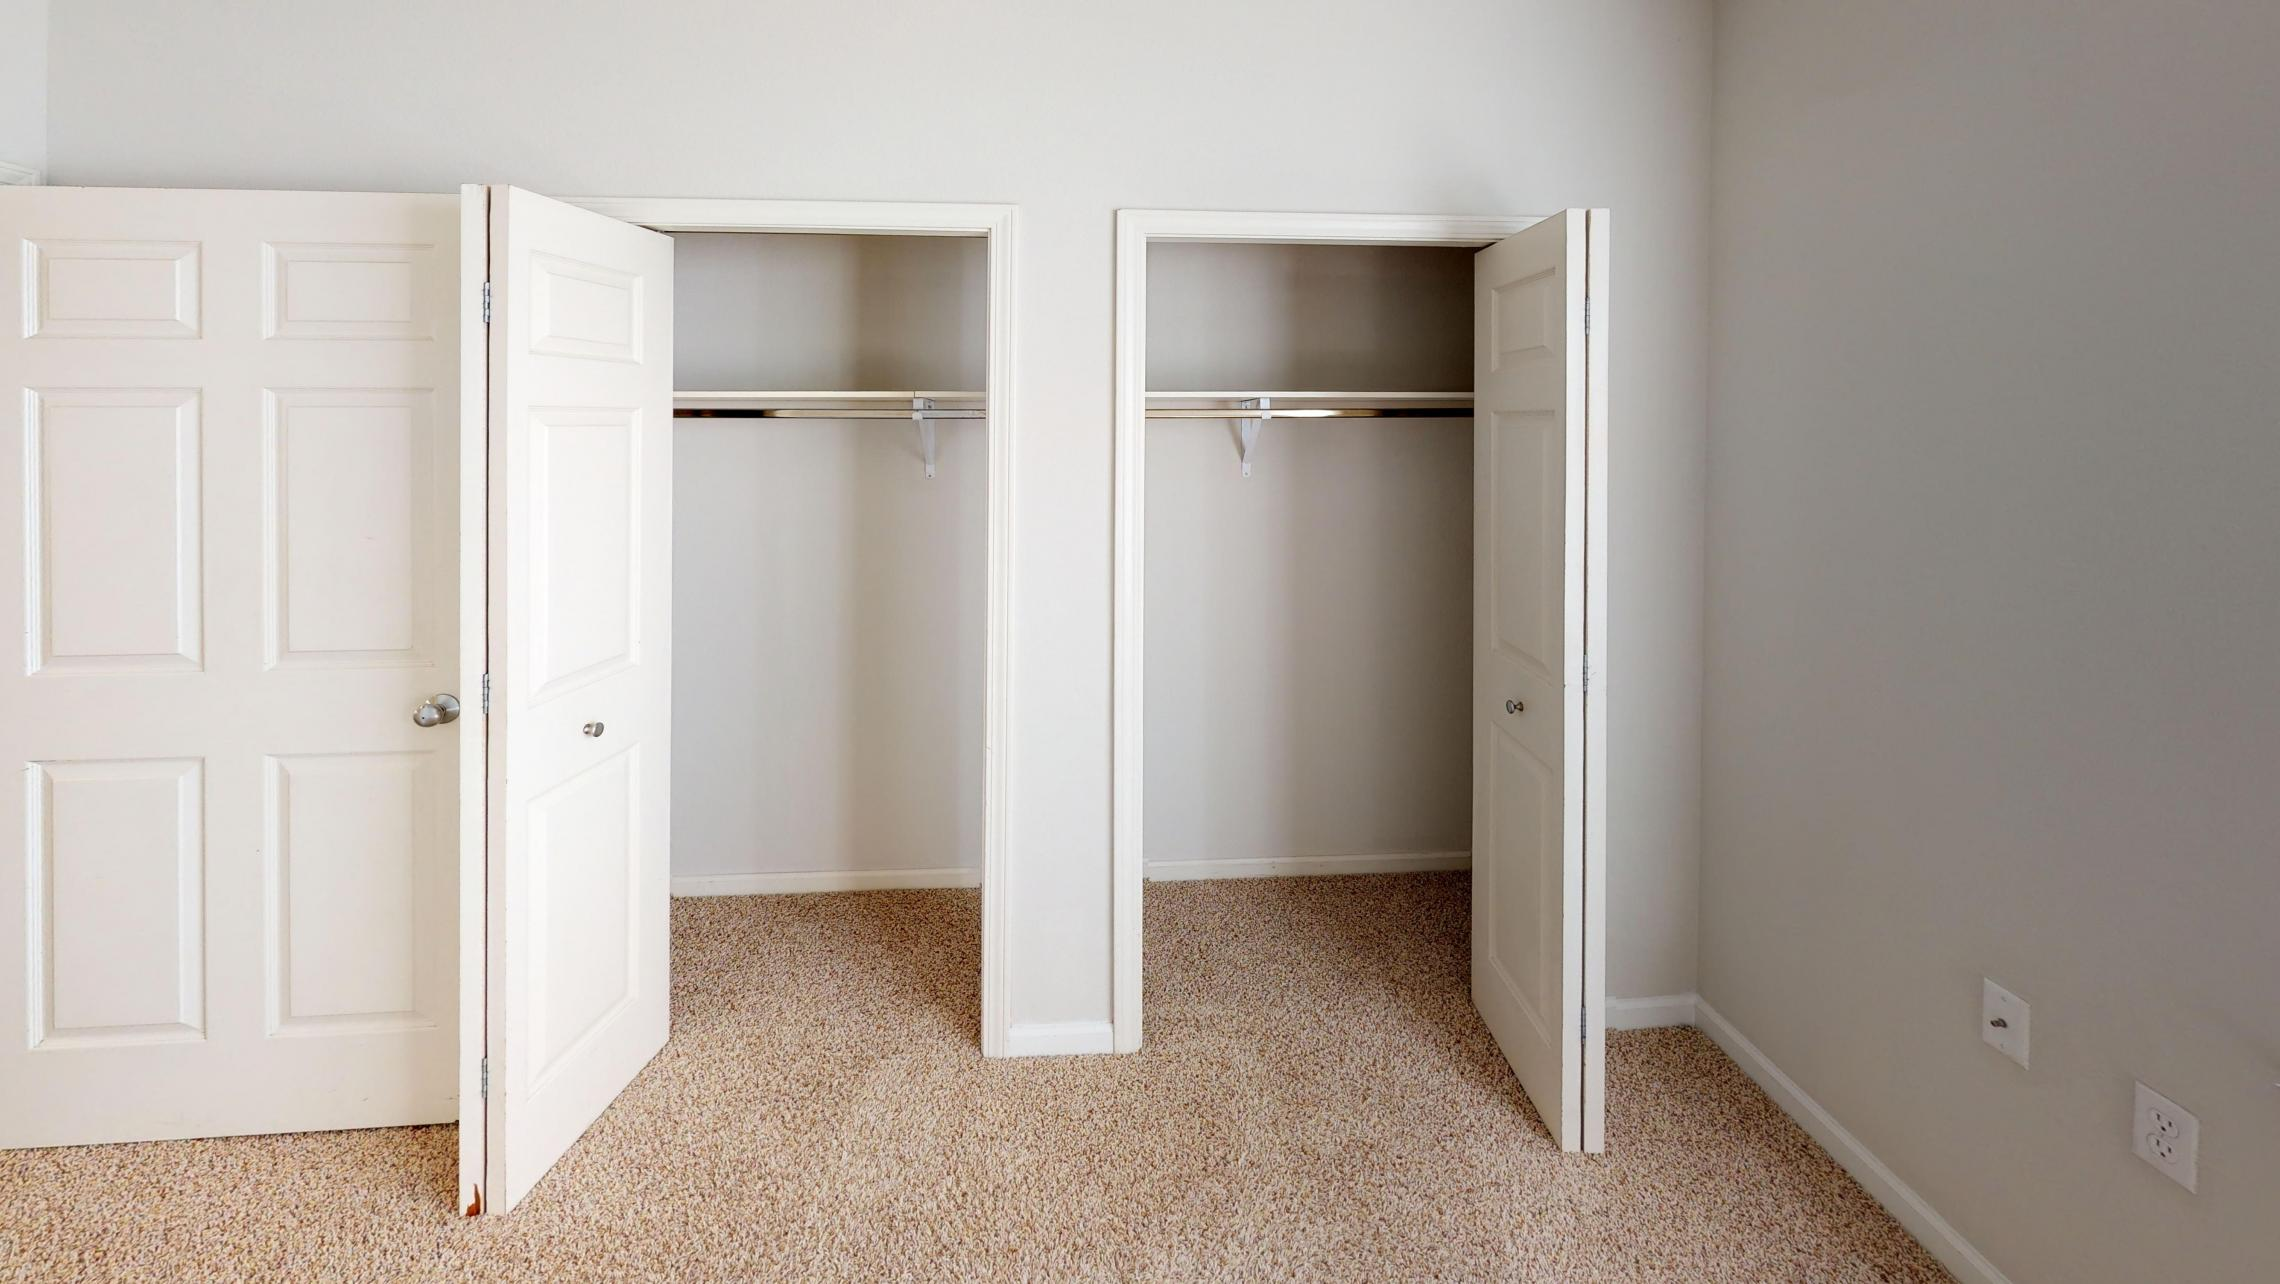 Wilson-Bay-Apartment-112-Two-Bedroom-Downtown-Madison-Guest-Room-Closet-Storage.jpg